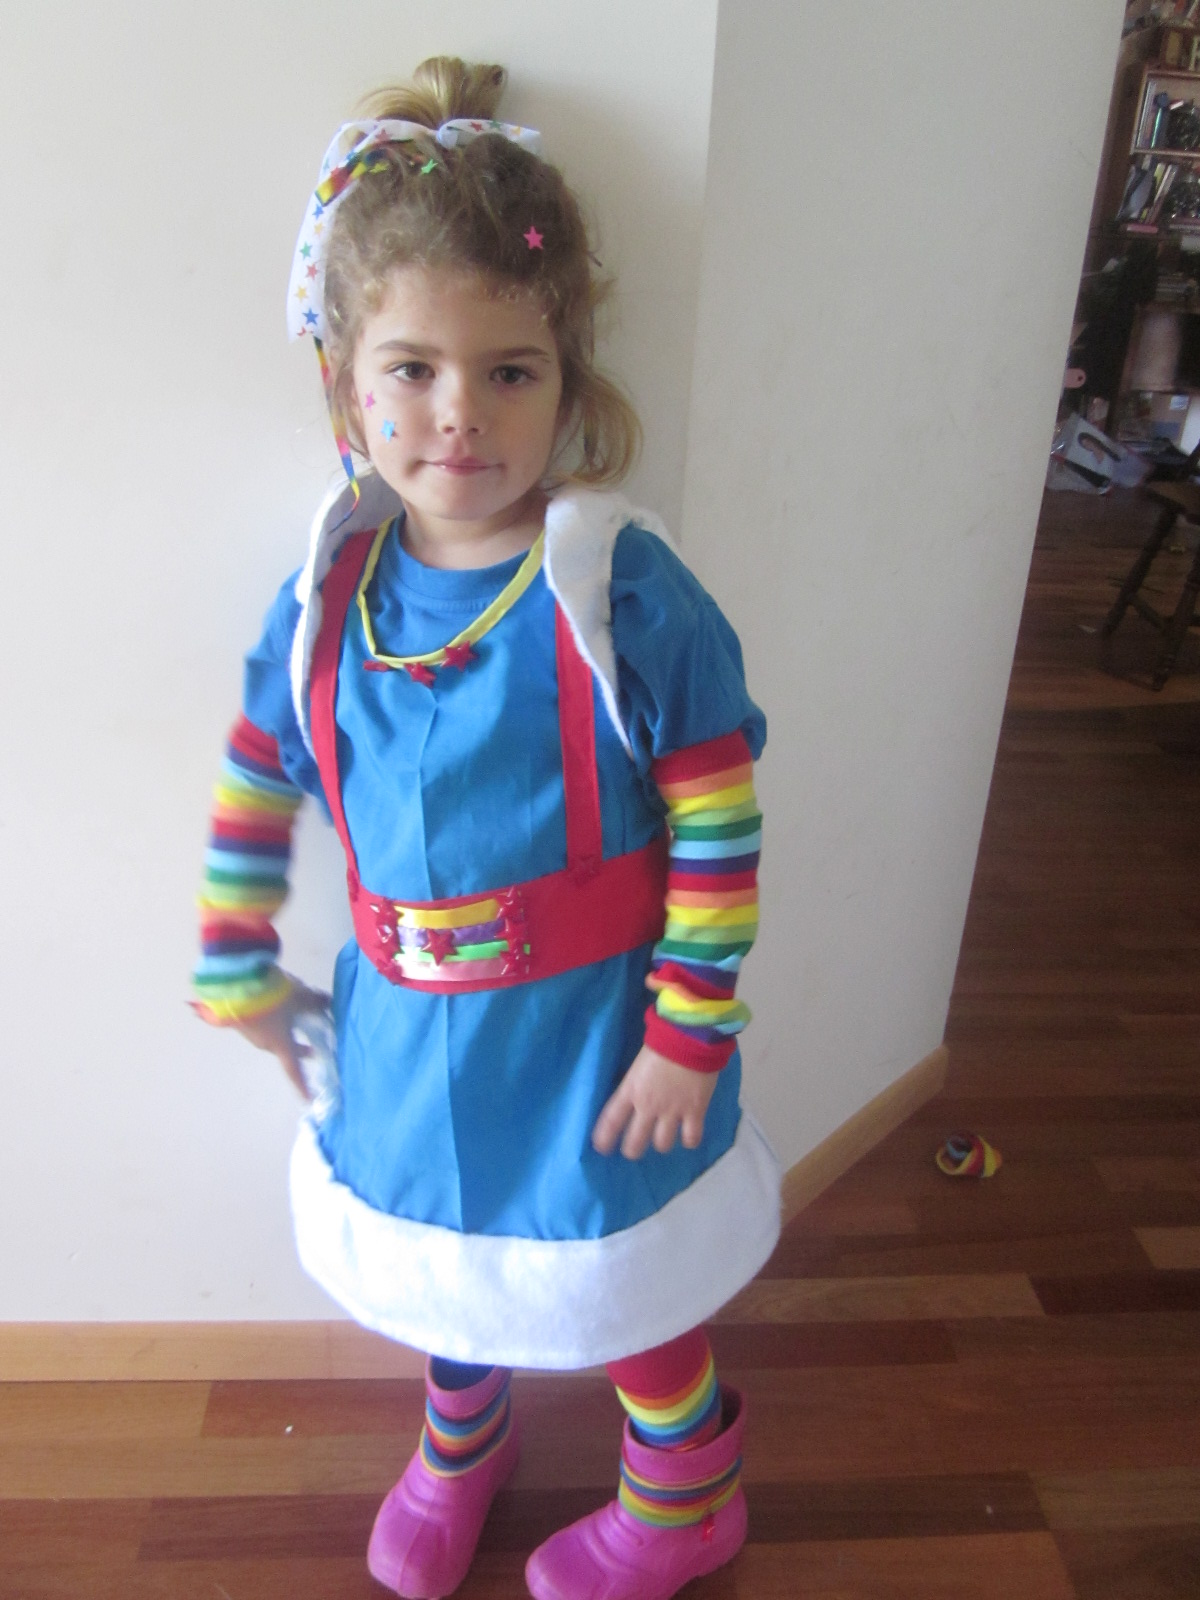 Miss 5 wasnt feeling well but doesnt she make a great Rainbow Brite?  sc 1 st  My Friends Call me Nelly & My Friends Call me Nelly: Book Week Dress Ups 2011